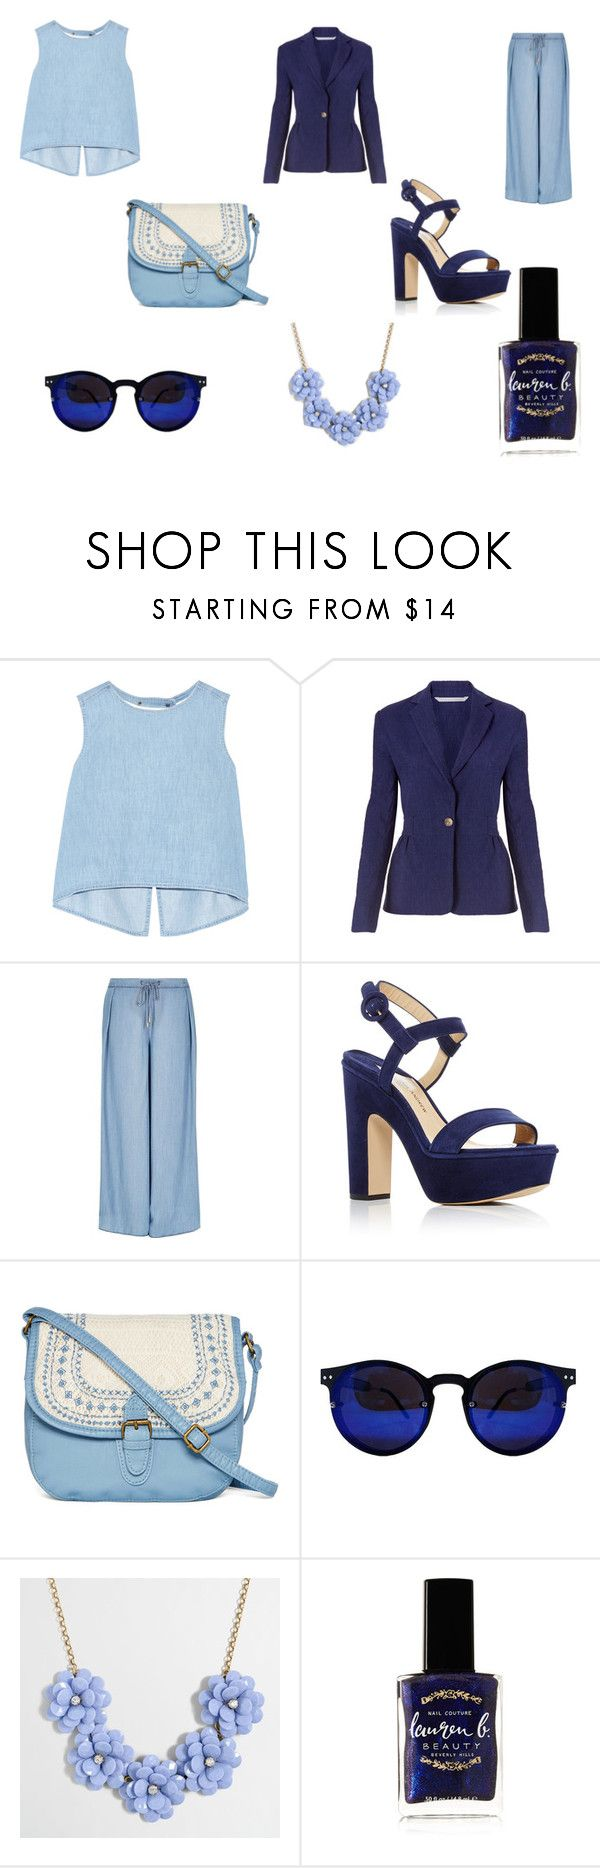 """""""Hot office lady....."""" by zoeb-dcc ❤ liked on Polyvore featuring Steve J & Yoni P, Diane Von Furstenberg, River Island, Paul Andrew, T-shirt & Jeans, J.Crew and Lauren B. Beauty"""